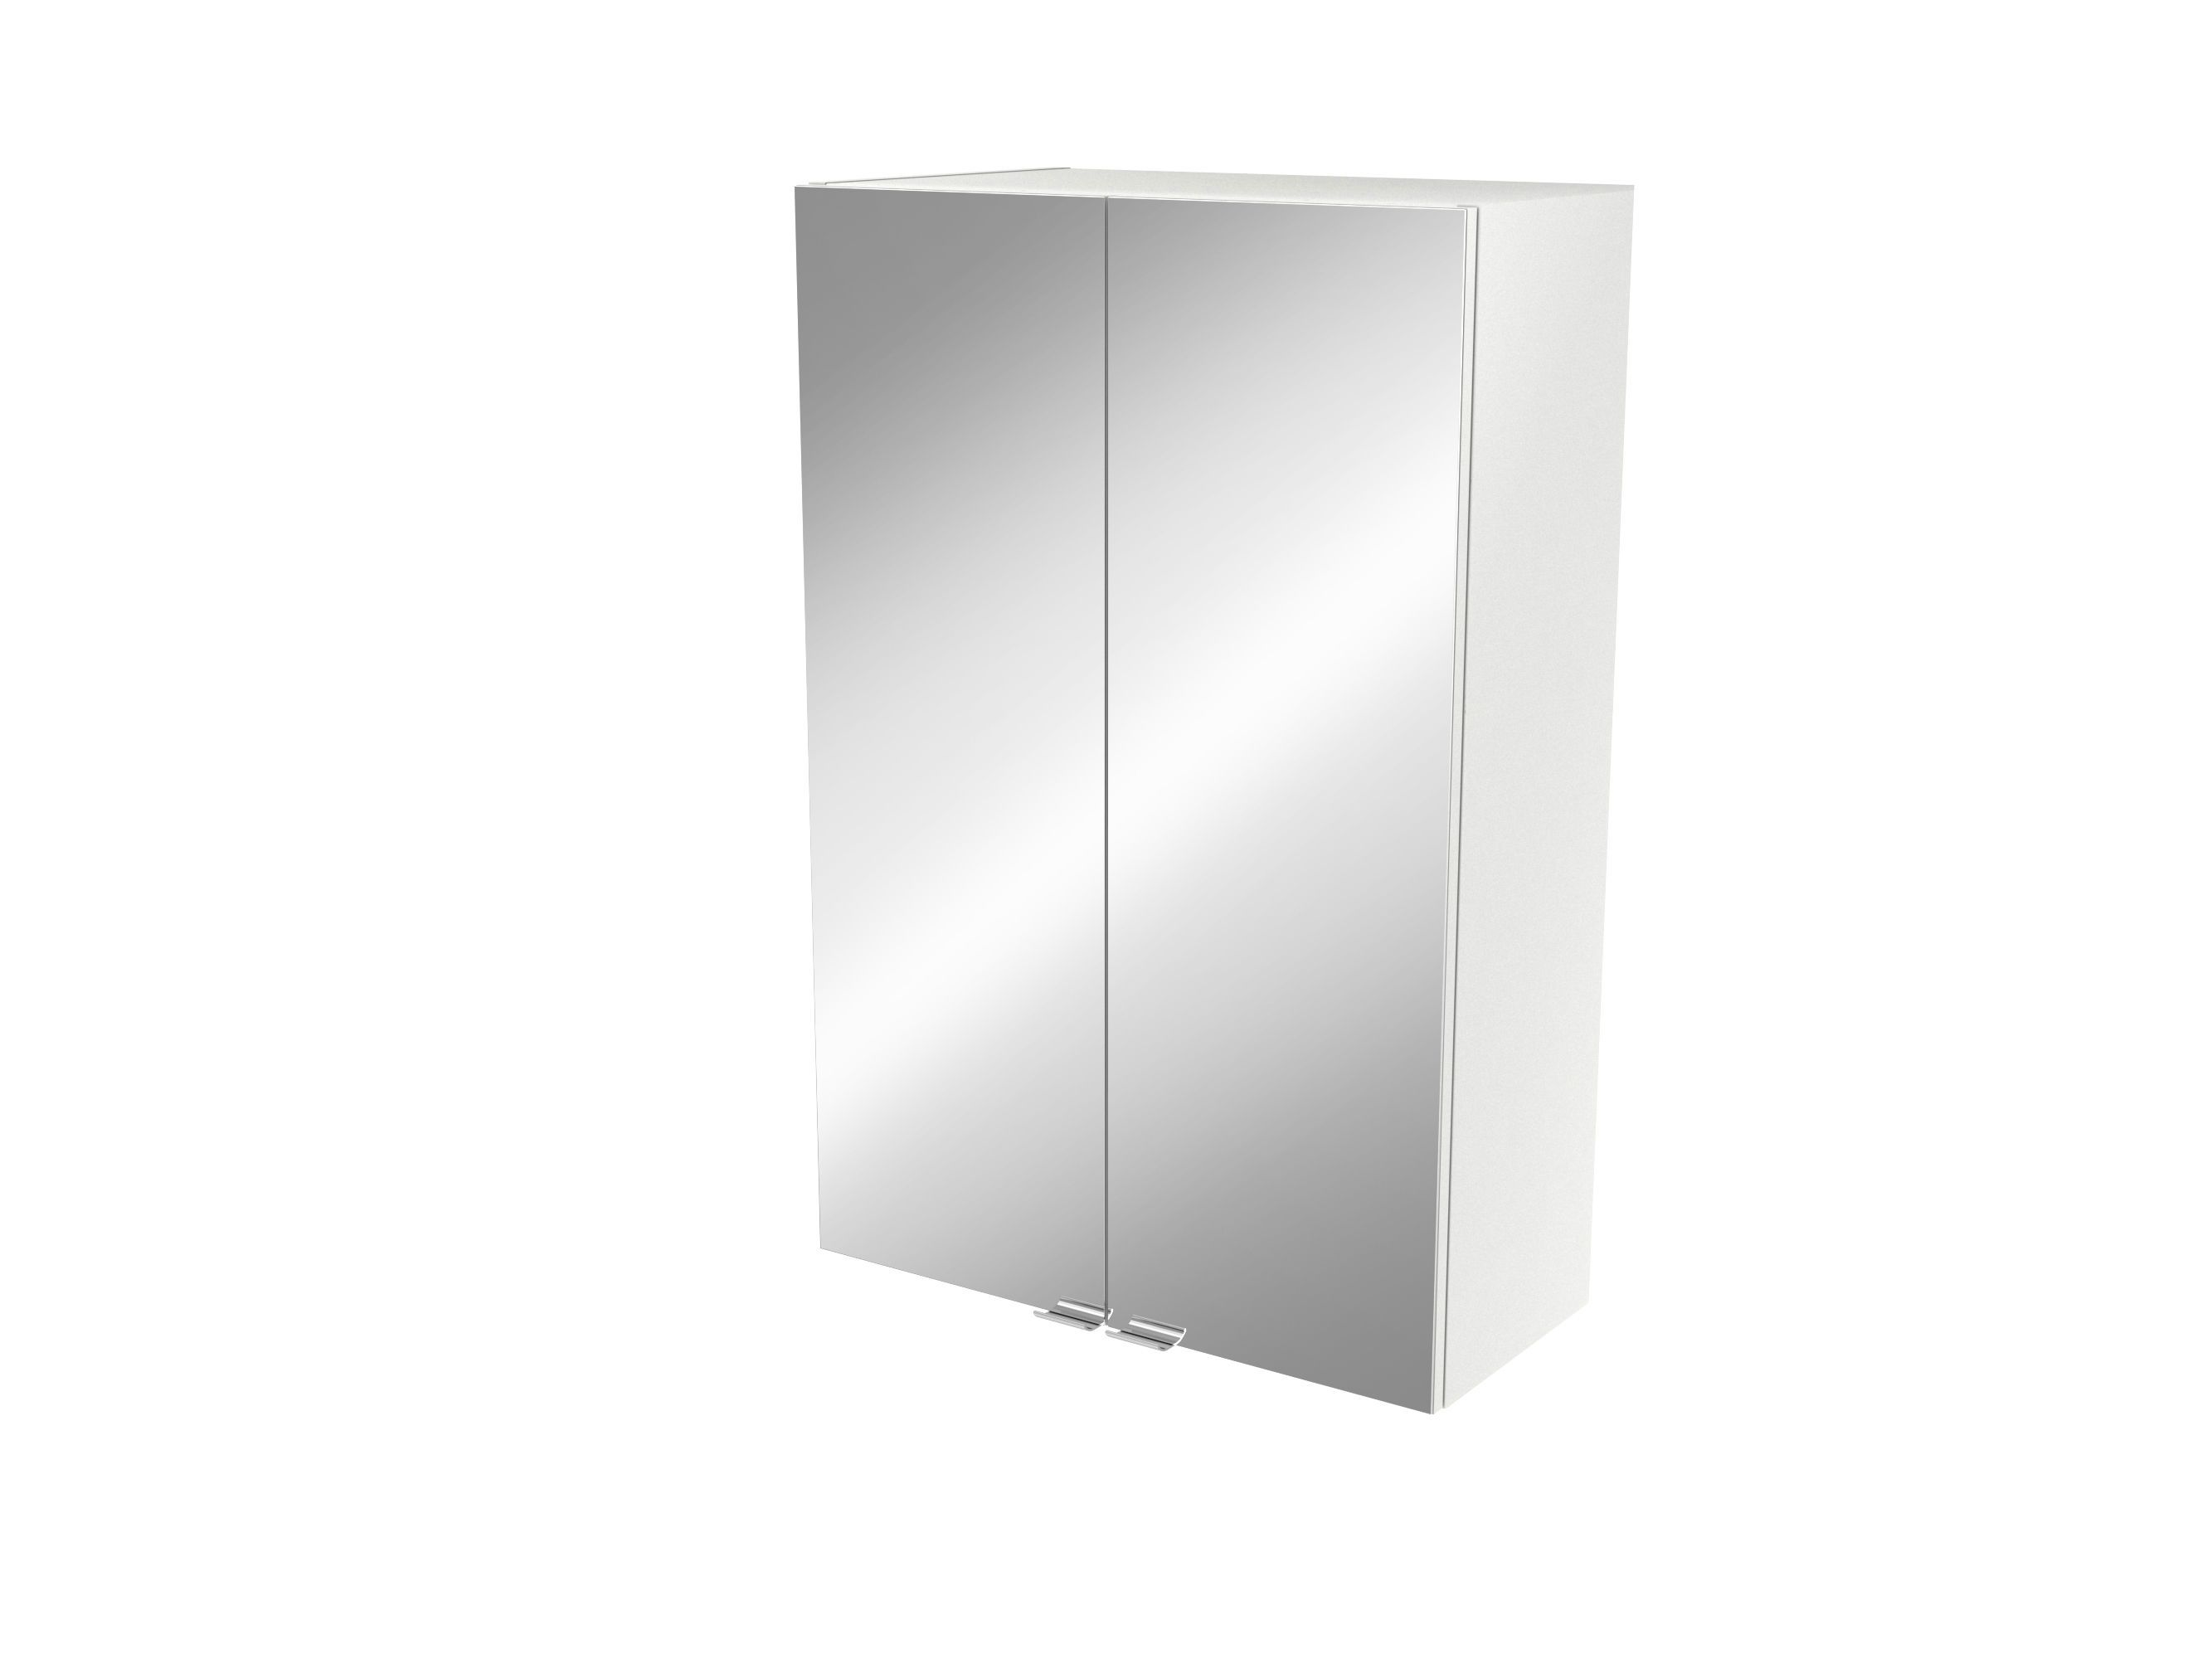 Cooke & Lewis Imandra Gloss White Deep Mirrored Wall Cabinet, (w)600mm